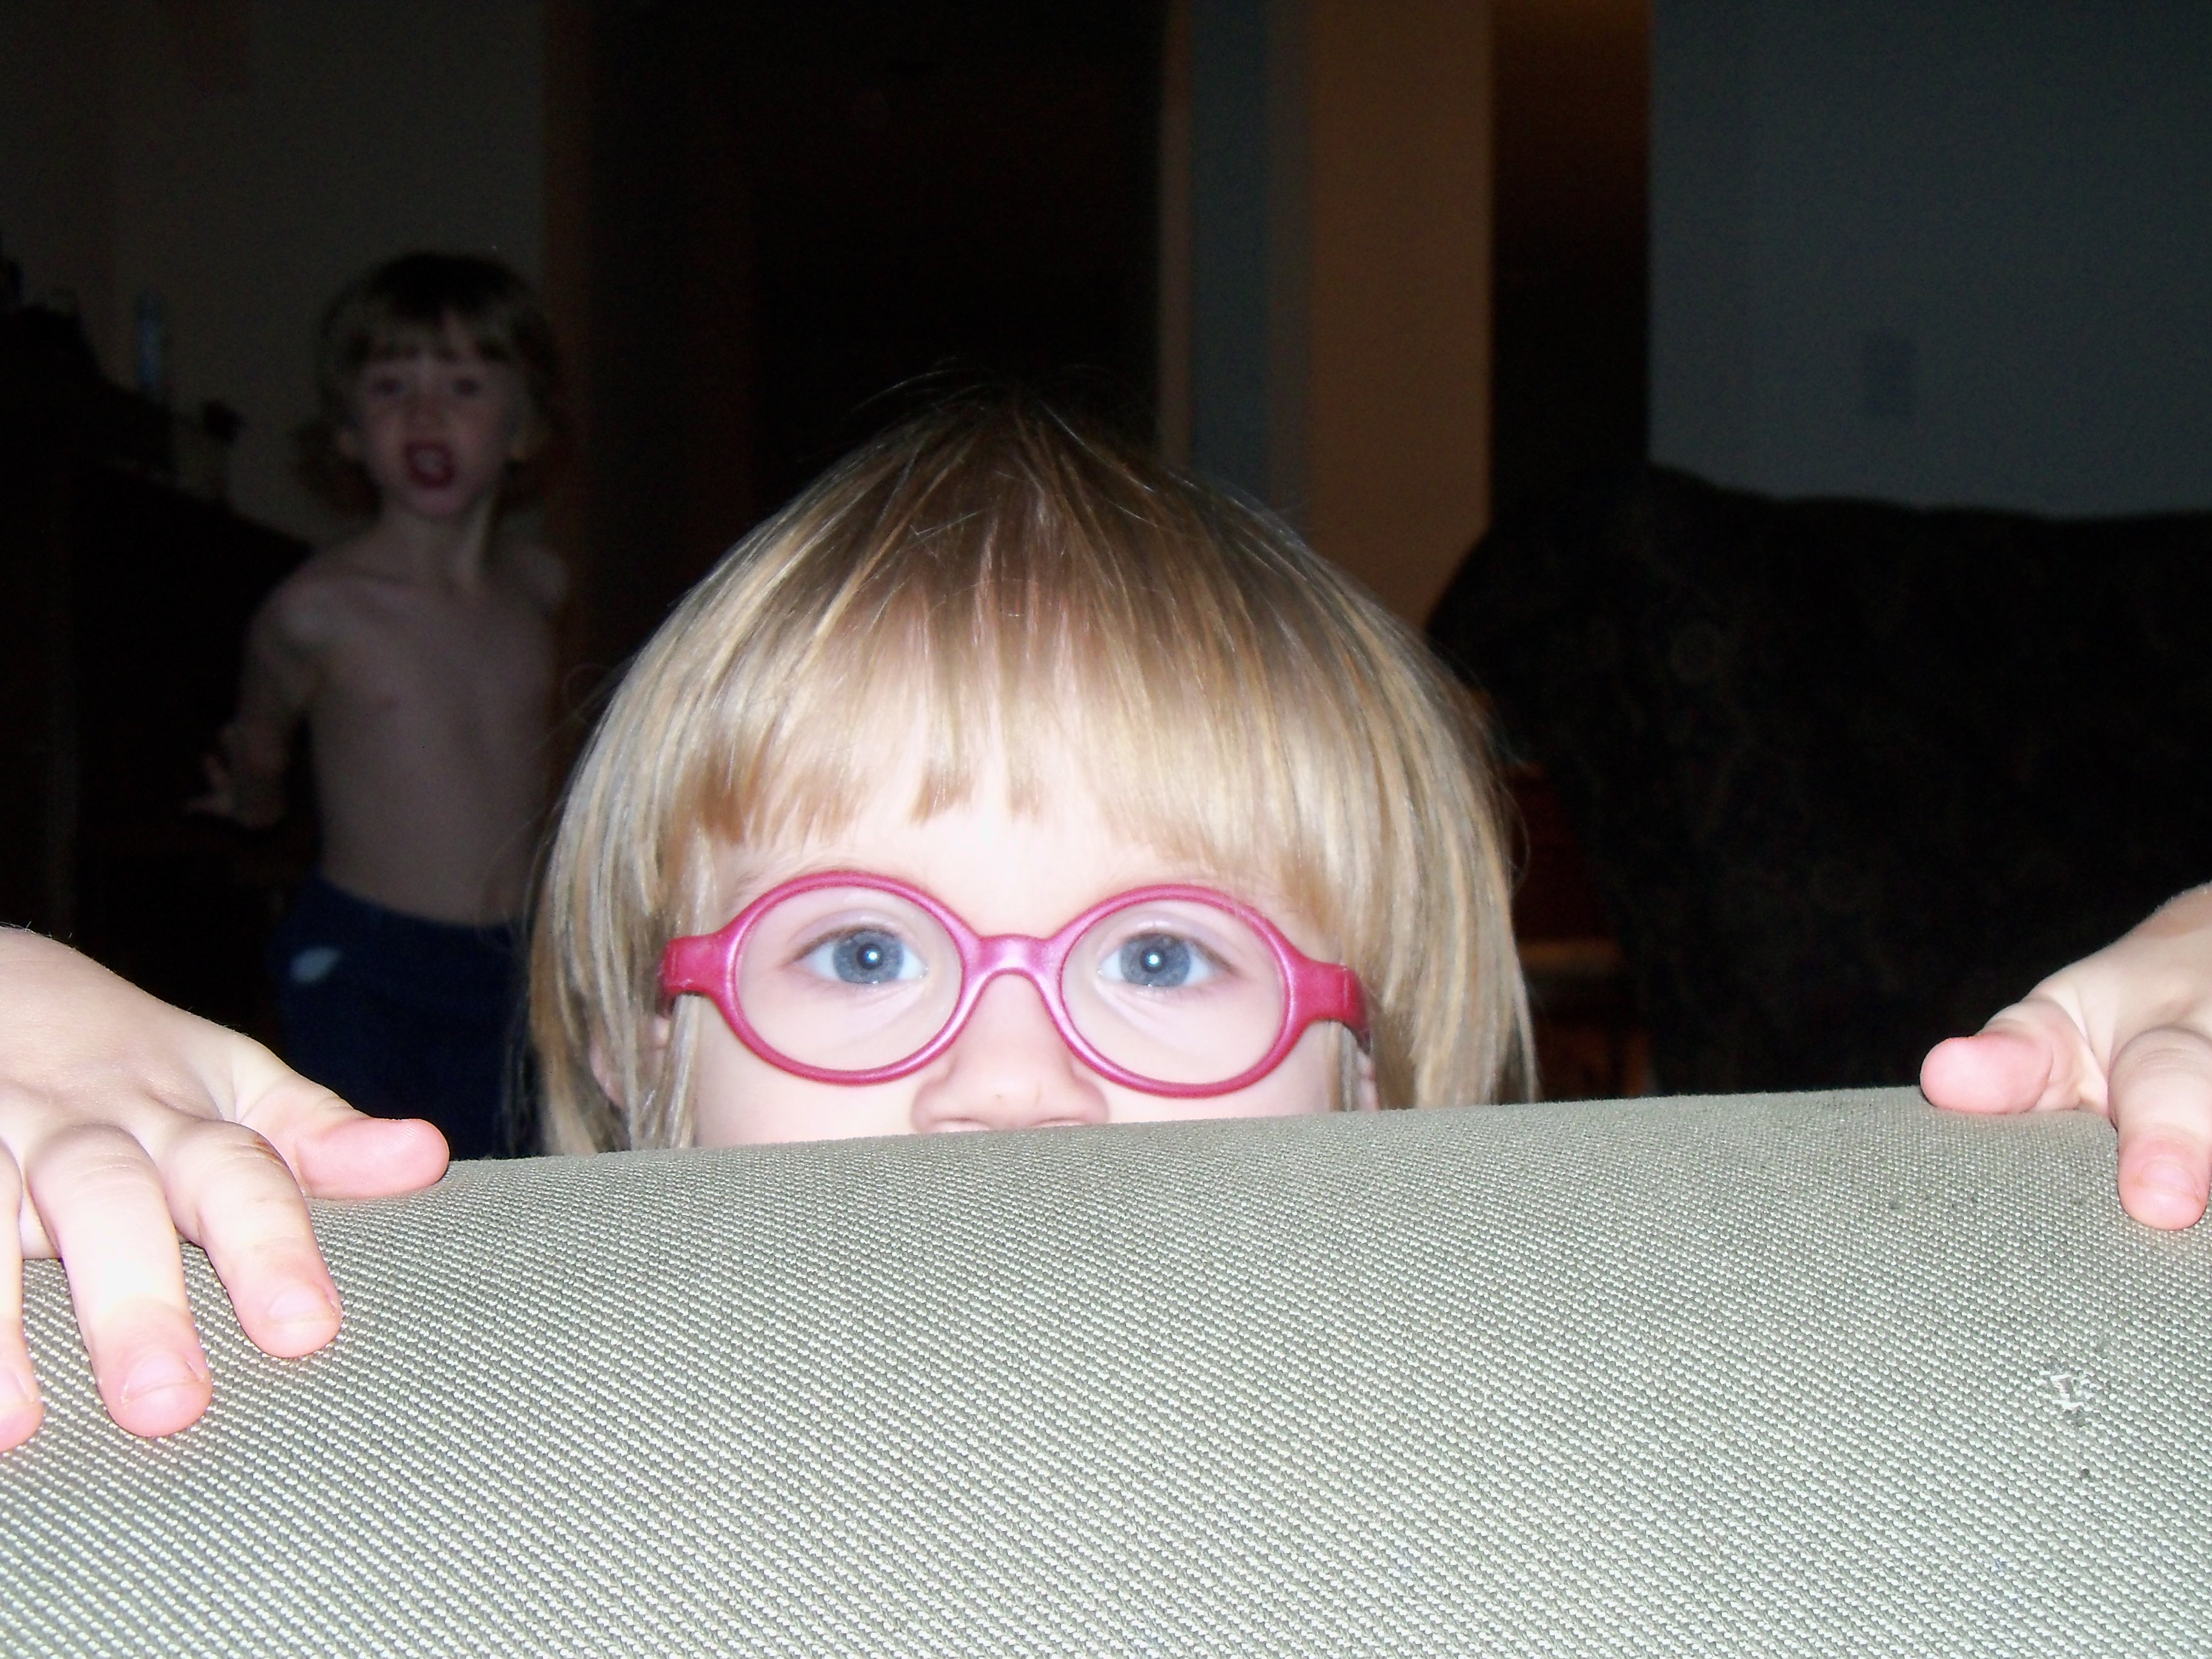 Child Peeking Behind Couch